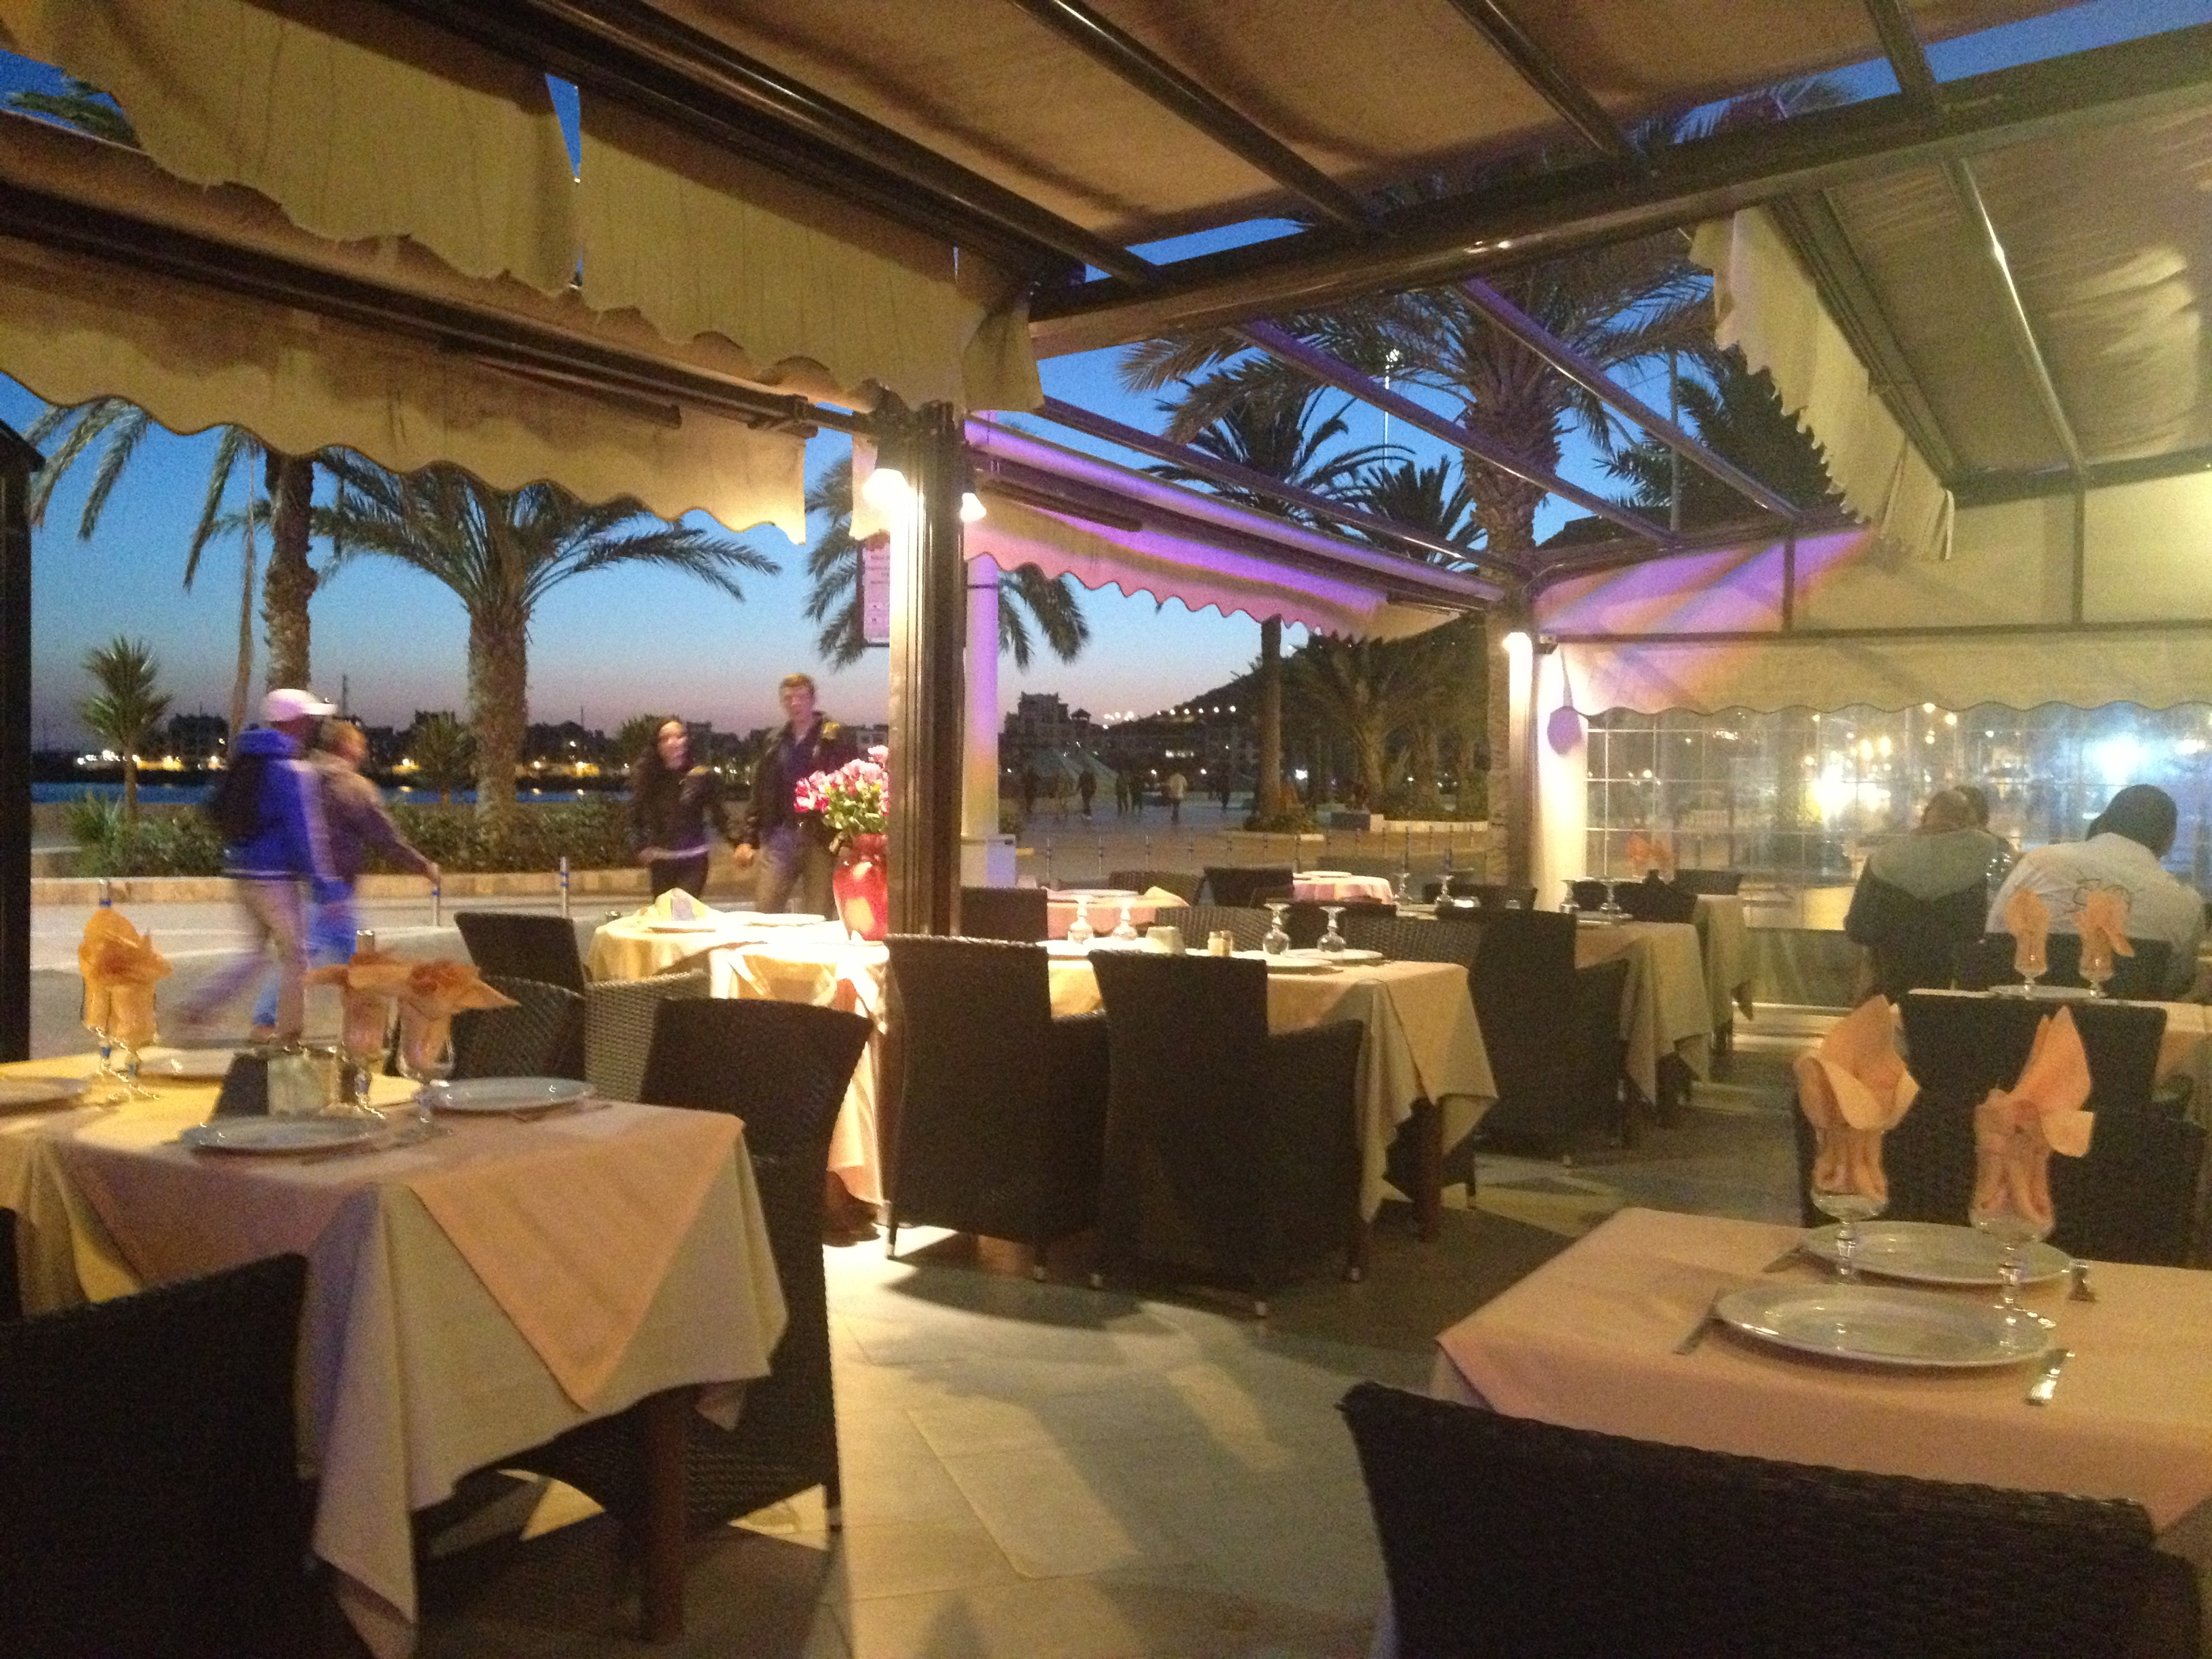 Agadir Ruqantino Restaurant, taken outside with tables, linen cloths, wine glasses filled with folded napkins, overlooking the sea and a pink and blue sky